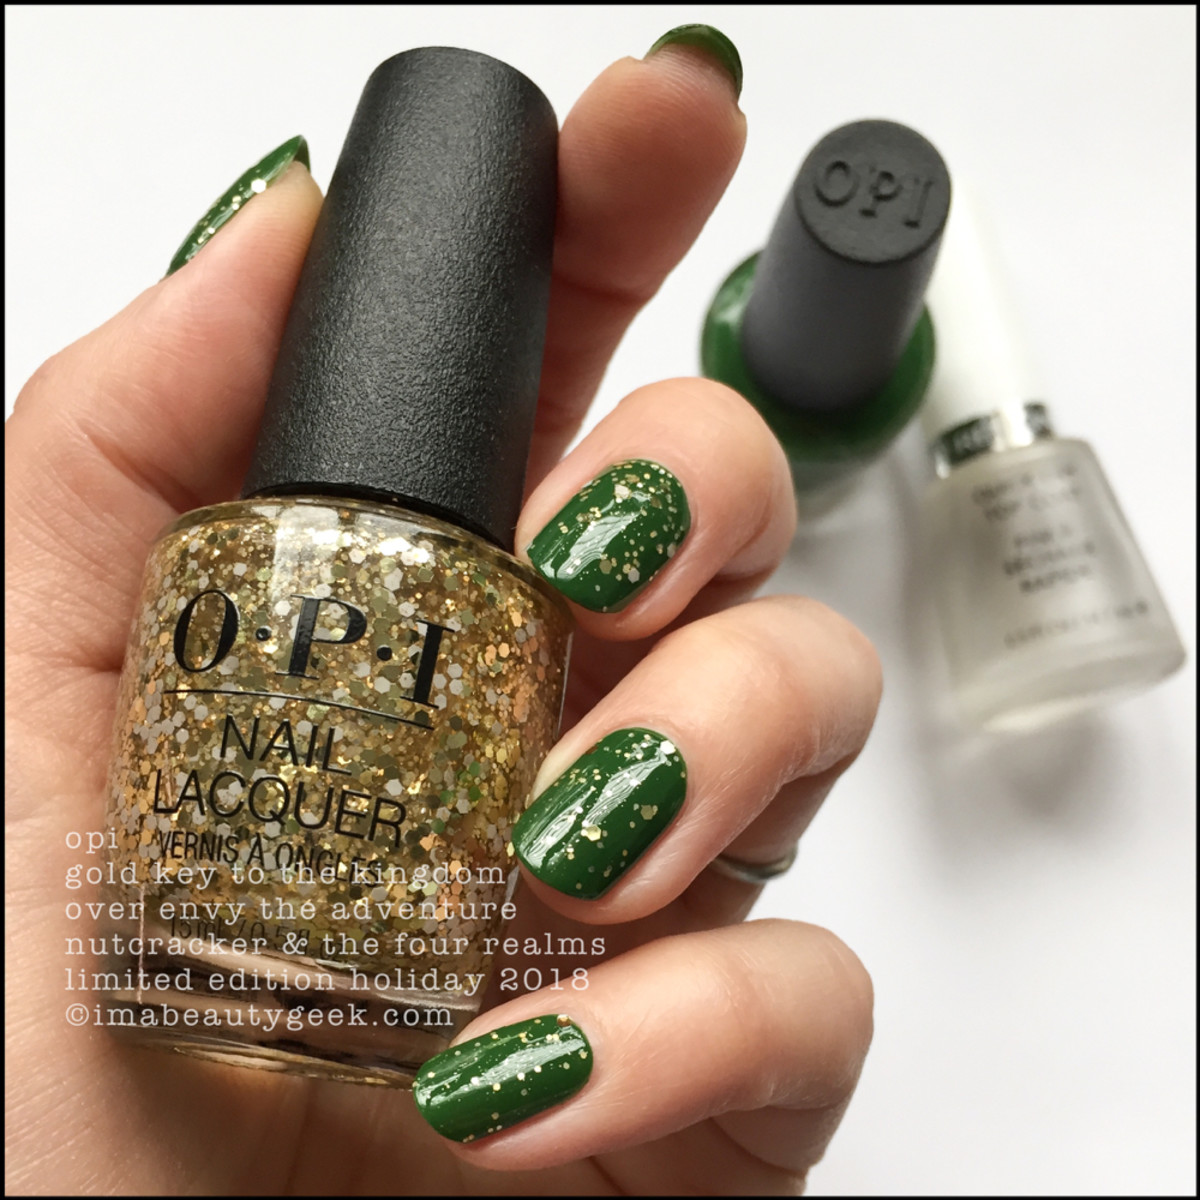 OPI Gold Key to the Kingdom over Envy the Adventure - OPI Nutcracker Holiday 2018